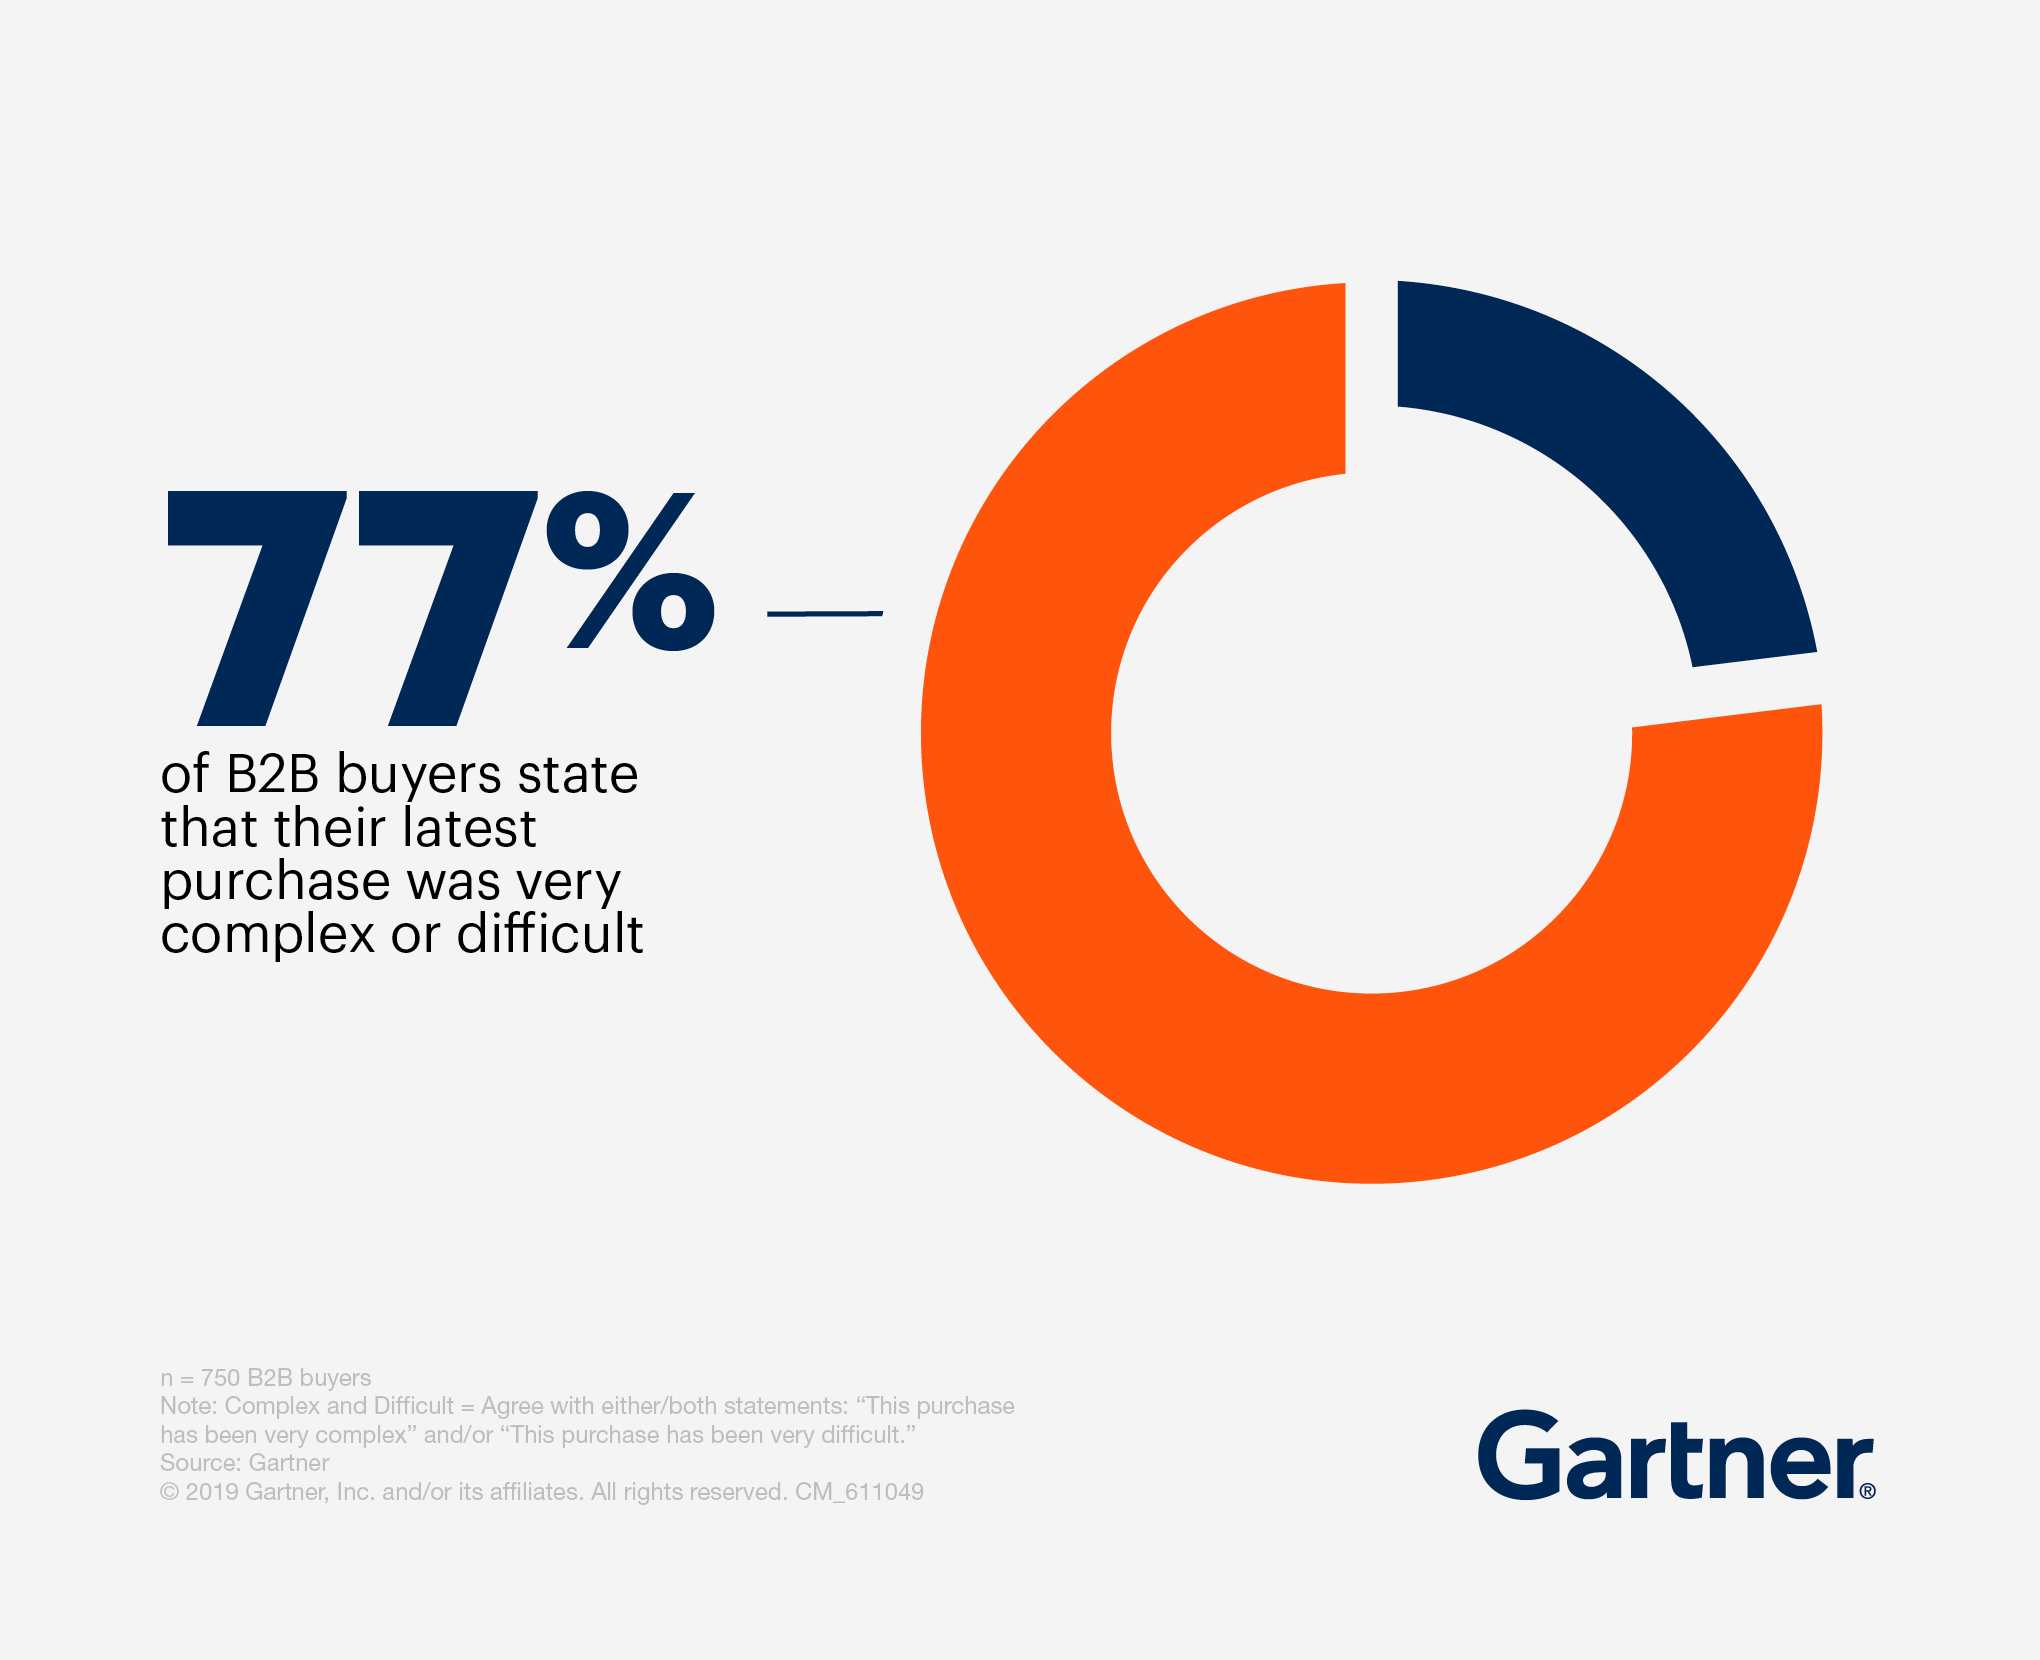 Pie chart showing that 77% of B2B buyers state that their latest purchase was very complex or difficult.